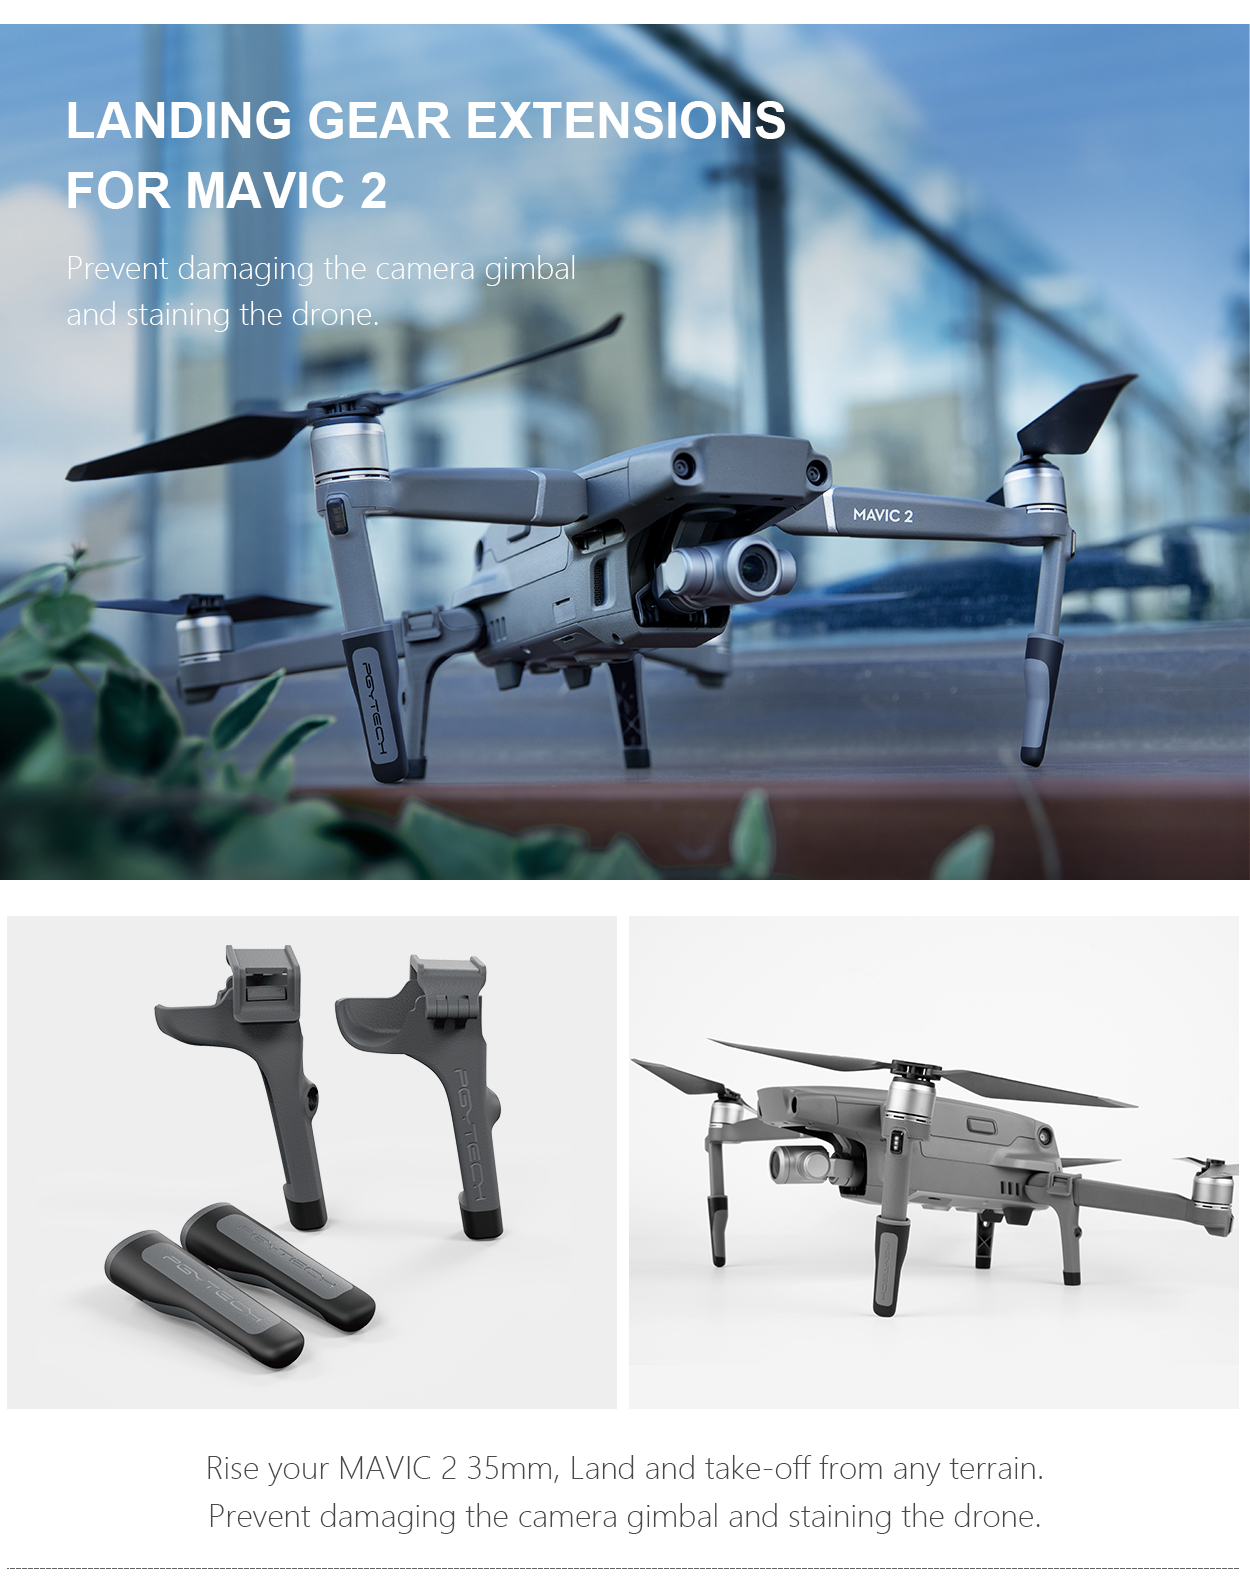 LANDING GEAR EXTENSIONS FOR MAVIC 2 - Prevent damaging the camera gimbal and staining the drone.